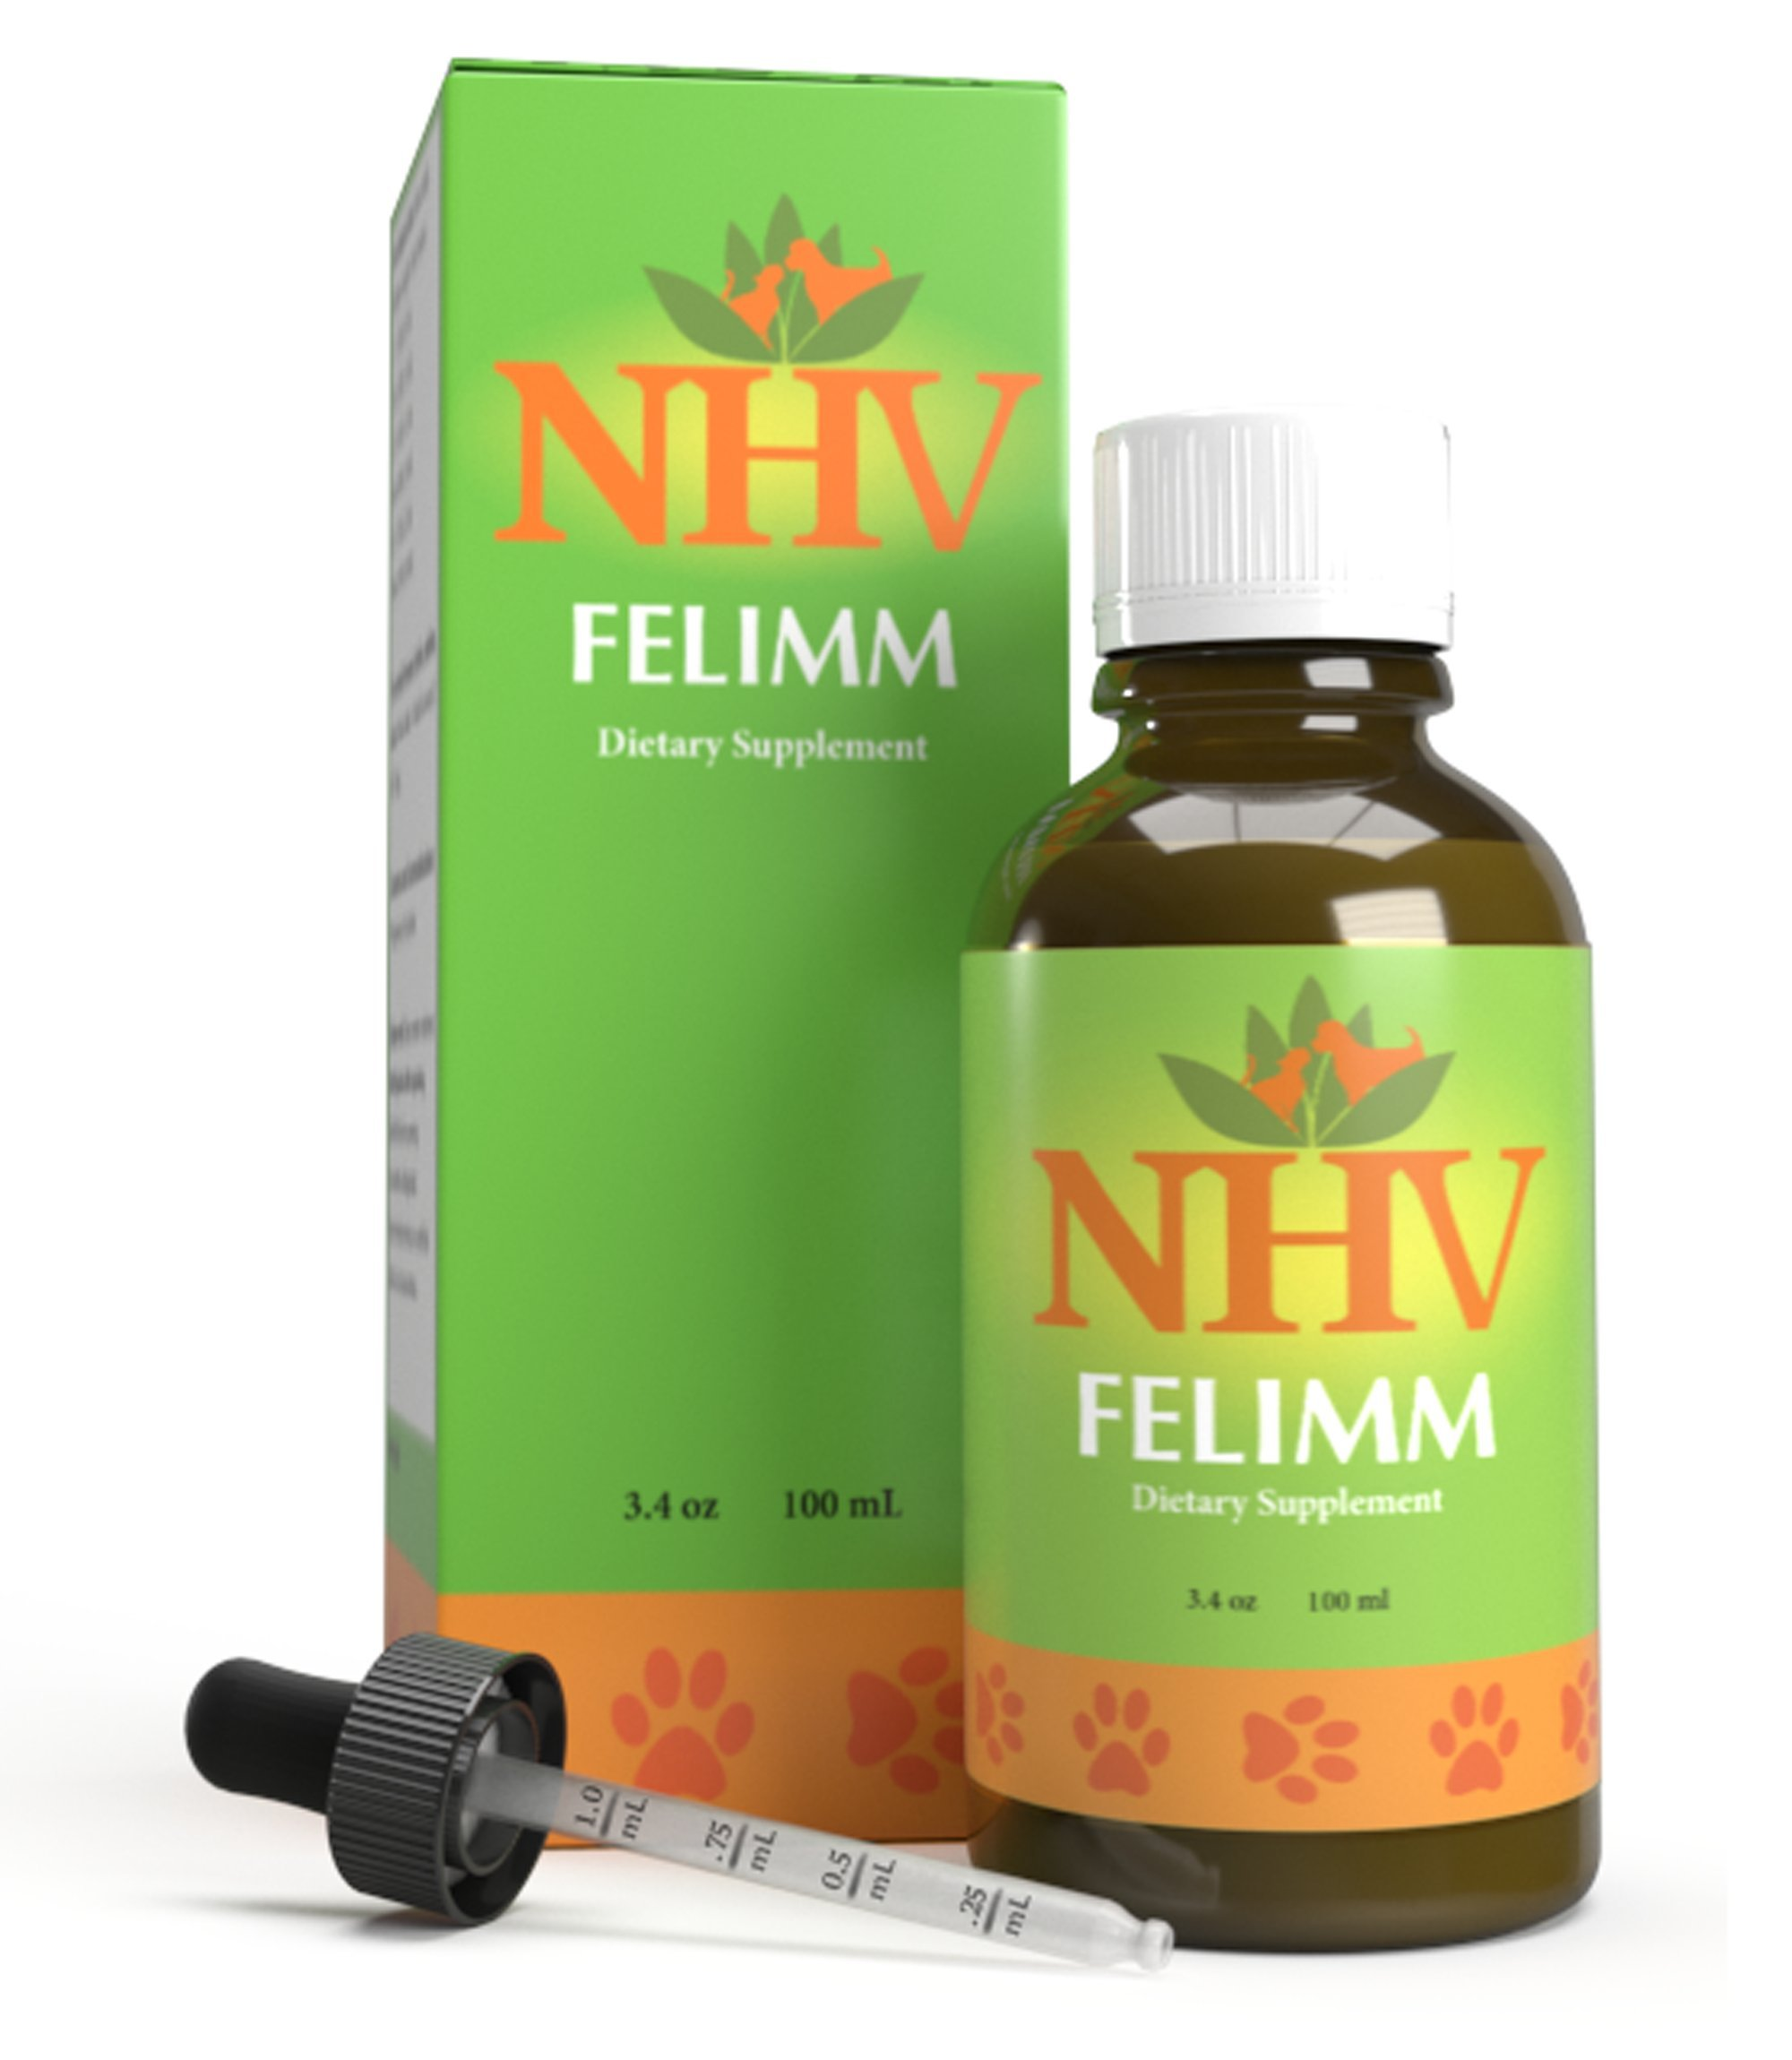 NHV Felimm - Natural Herbal Support That Helps Pets With Feline Leukemia Virus (FeLV), FIP, FIV and Canine Herpes Virus by NHV